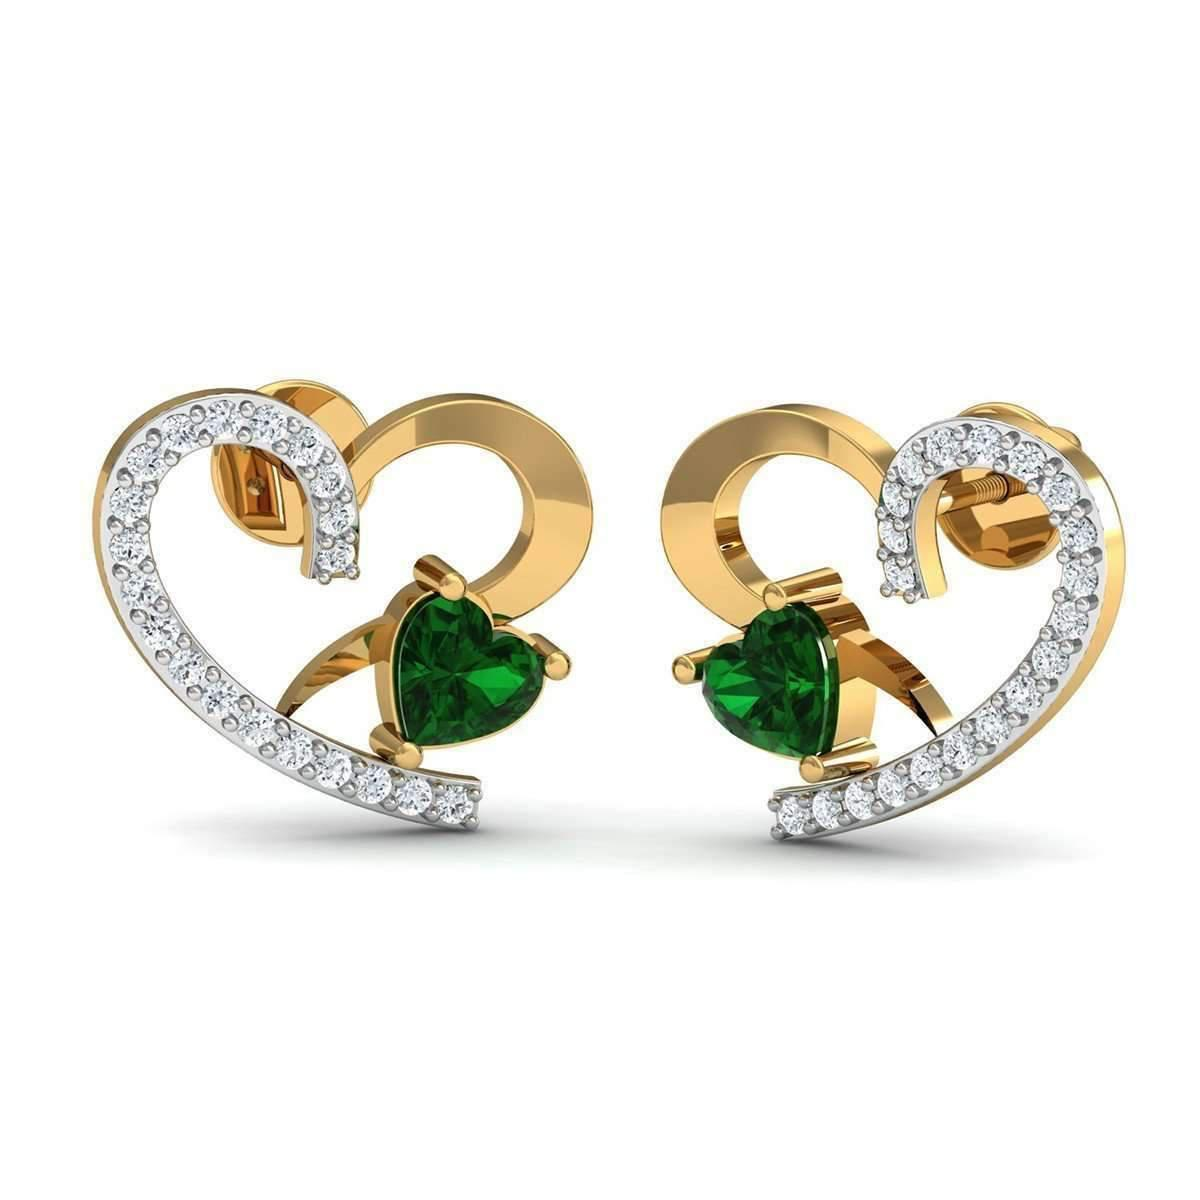 Diamoire Jewels 18kt Yellow Gold 0.07ct Pave Diamond Infinity Earrings With Emerald NSaIr